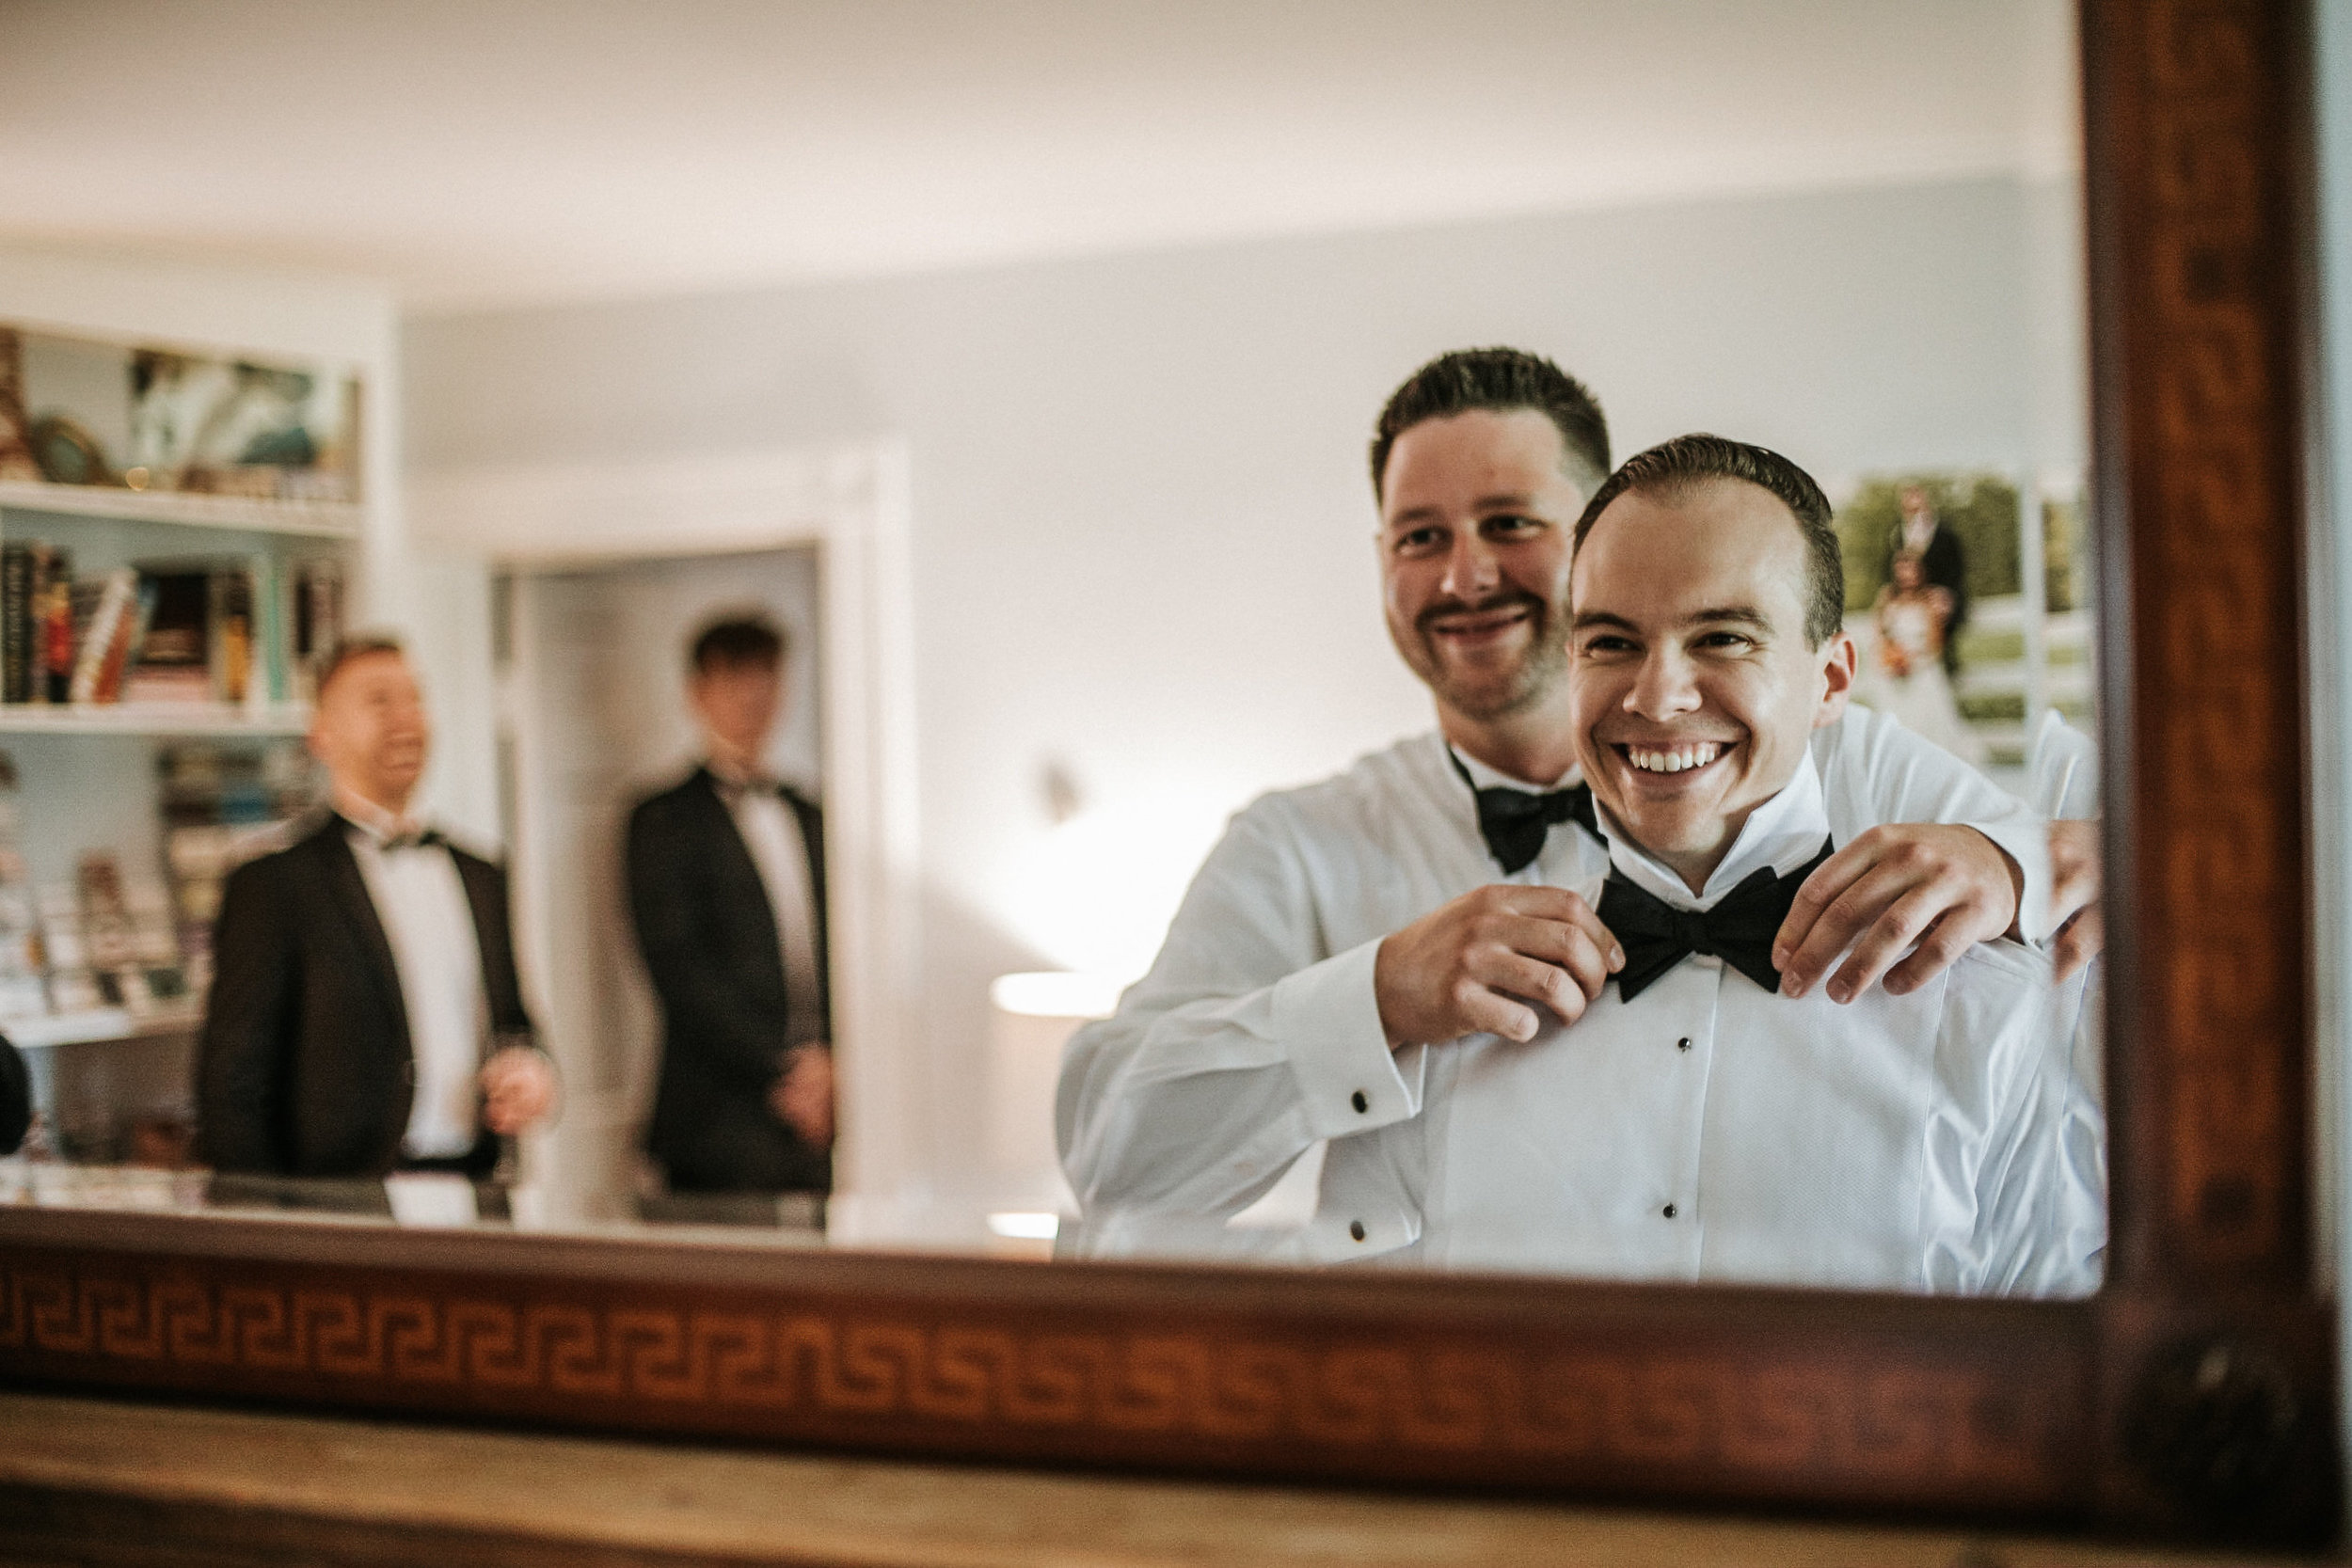 Groom smiling in mirror